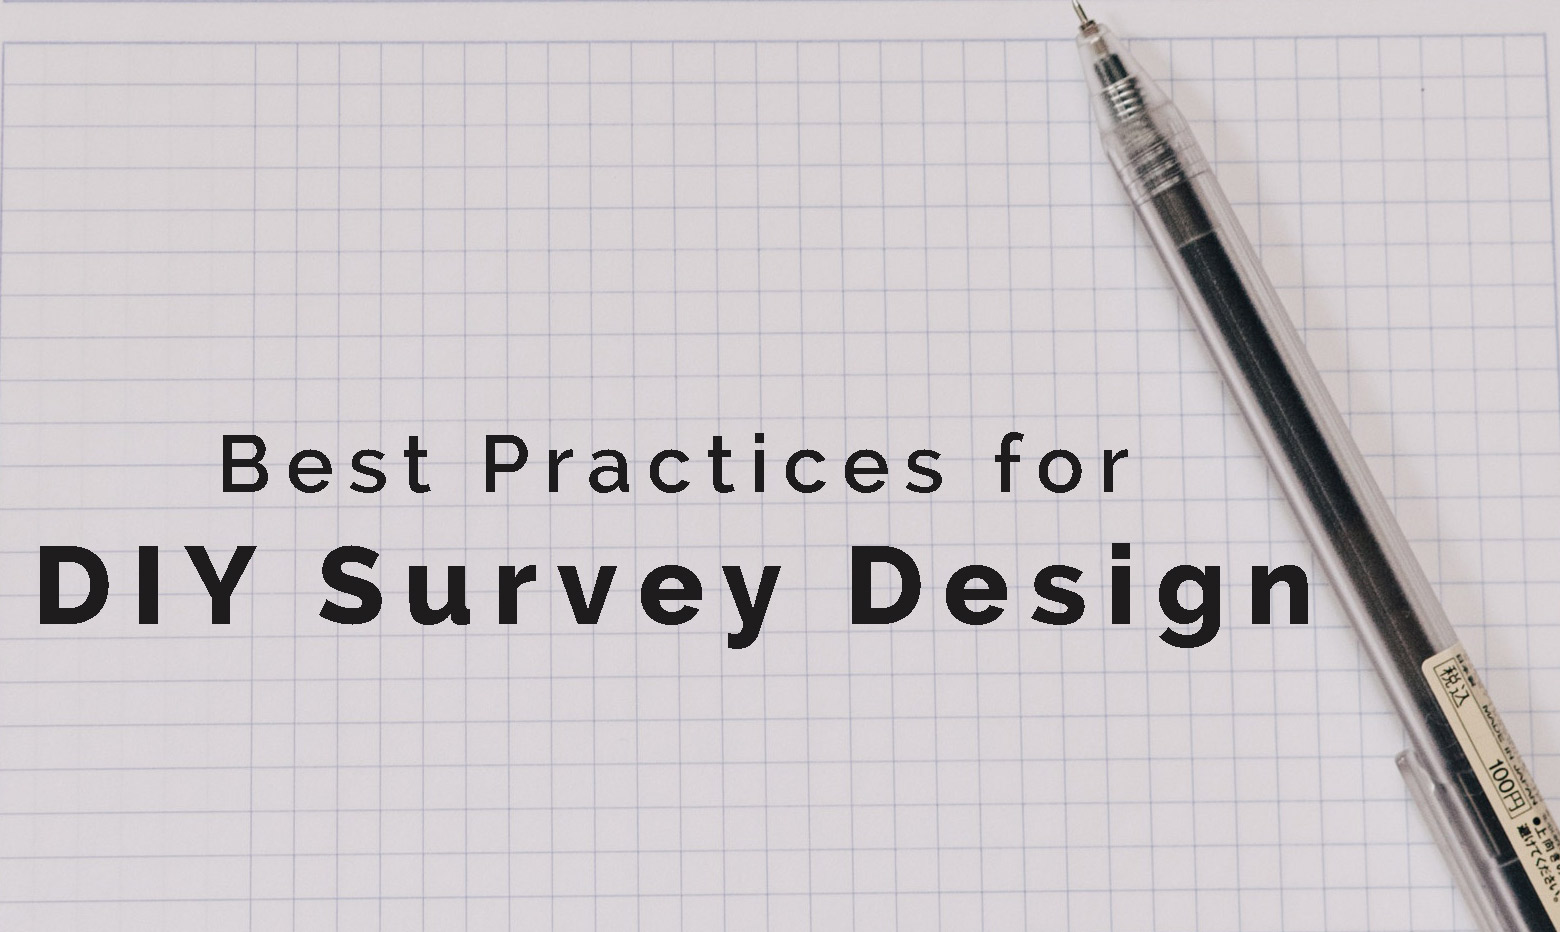 Best Practices for DIY Survey Design